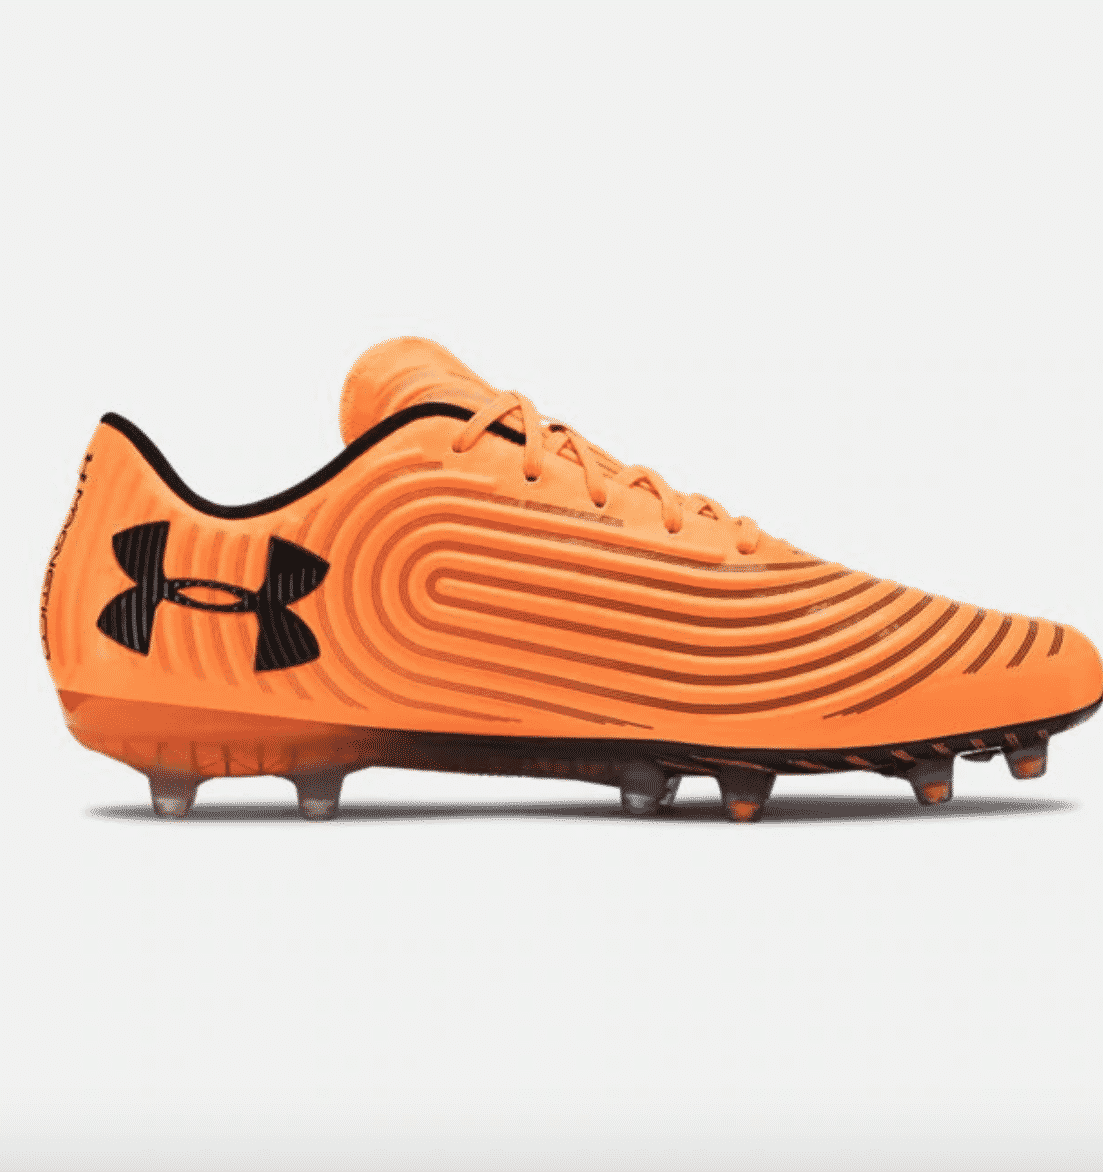 Under Armour Magnetico Control Pro